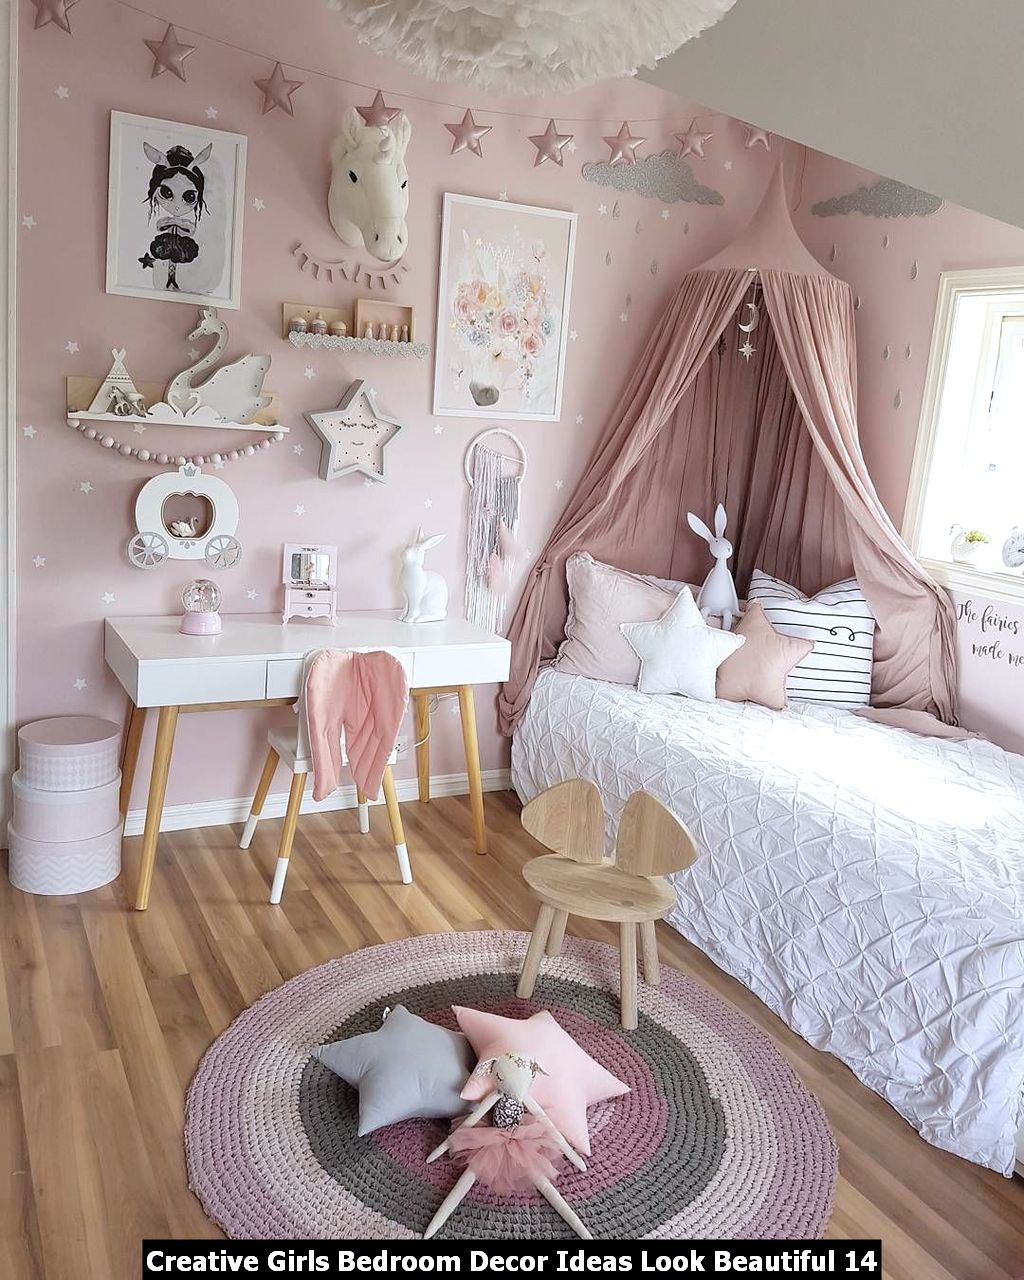 Creative Girls Bedroom Decor Ideas Look Beautiful 14